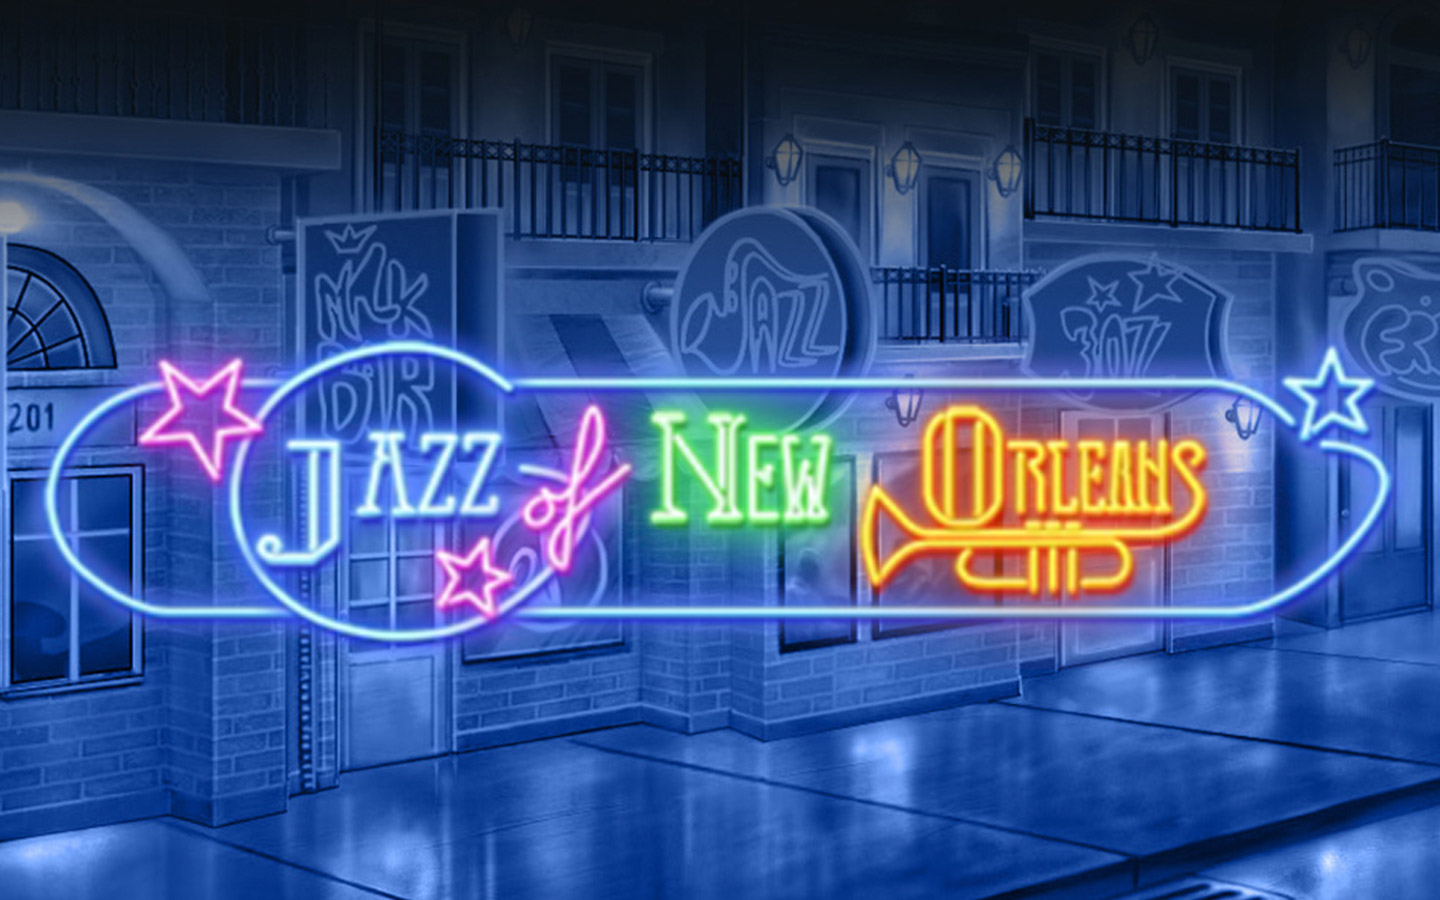 Jazz Casino New Orleans